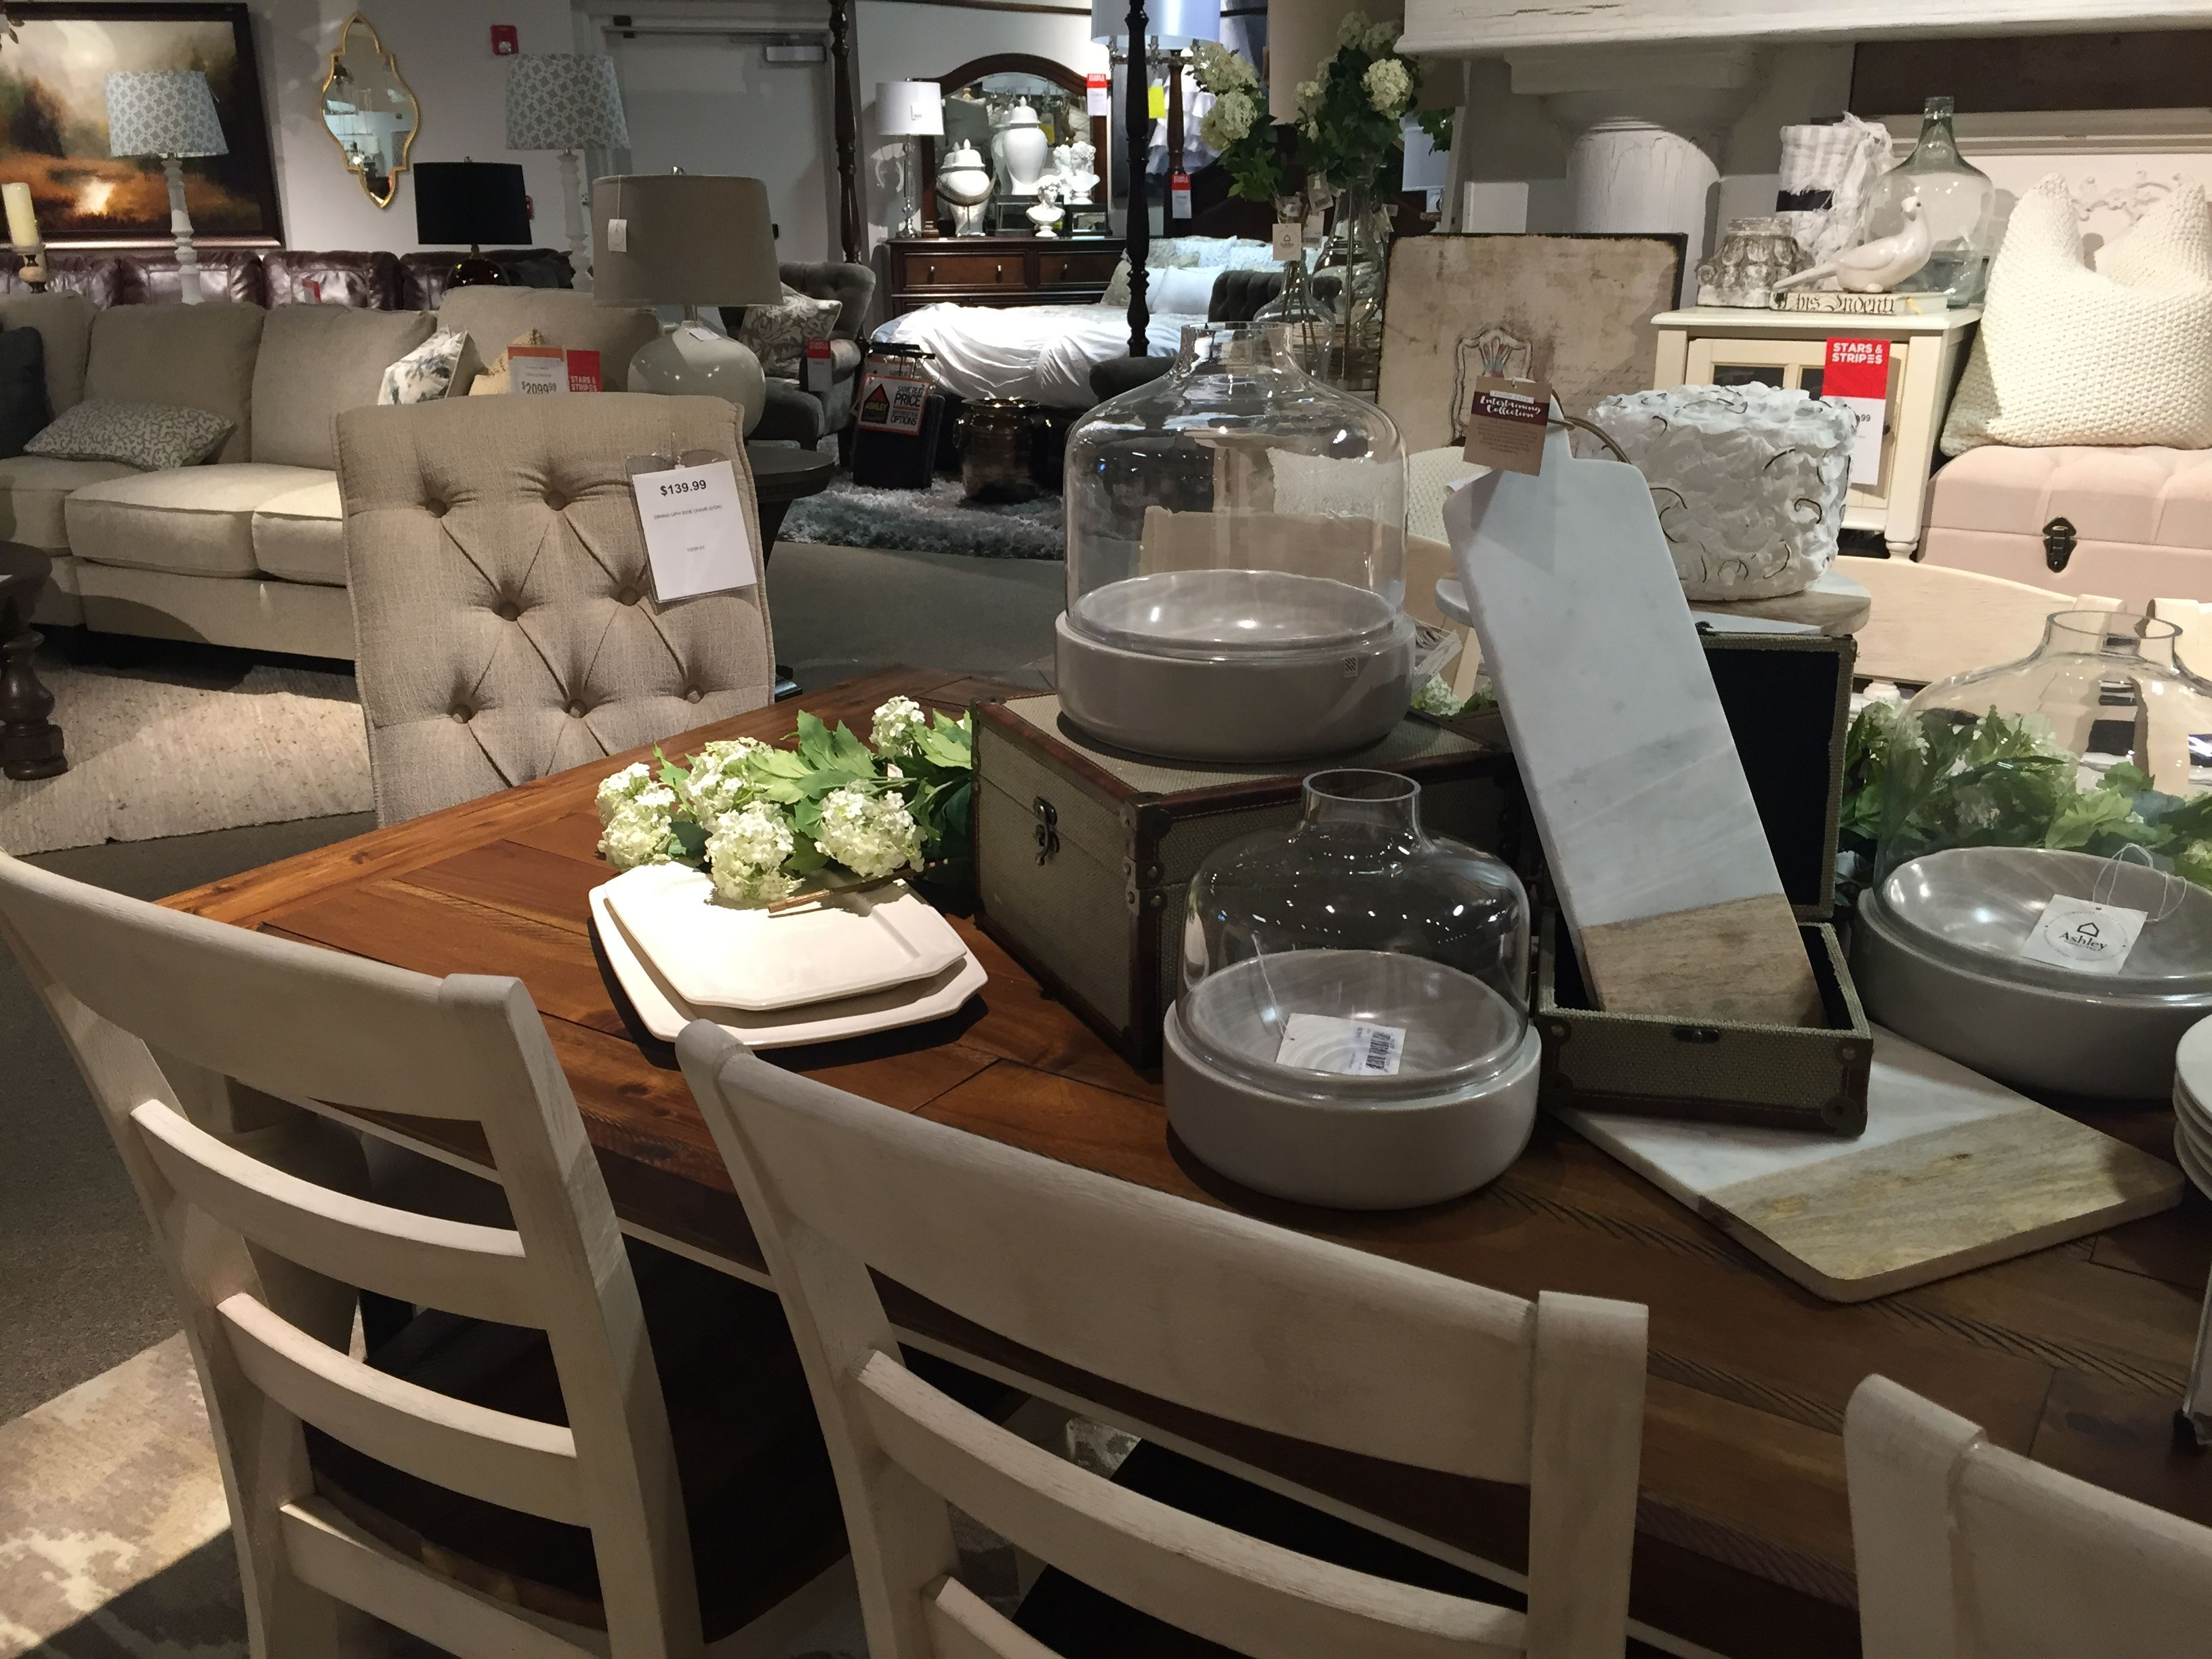 west county marsilona dining inspire | dsg store designs